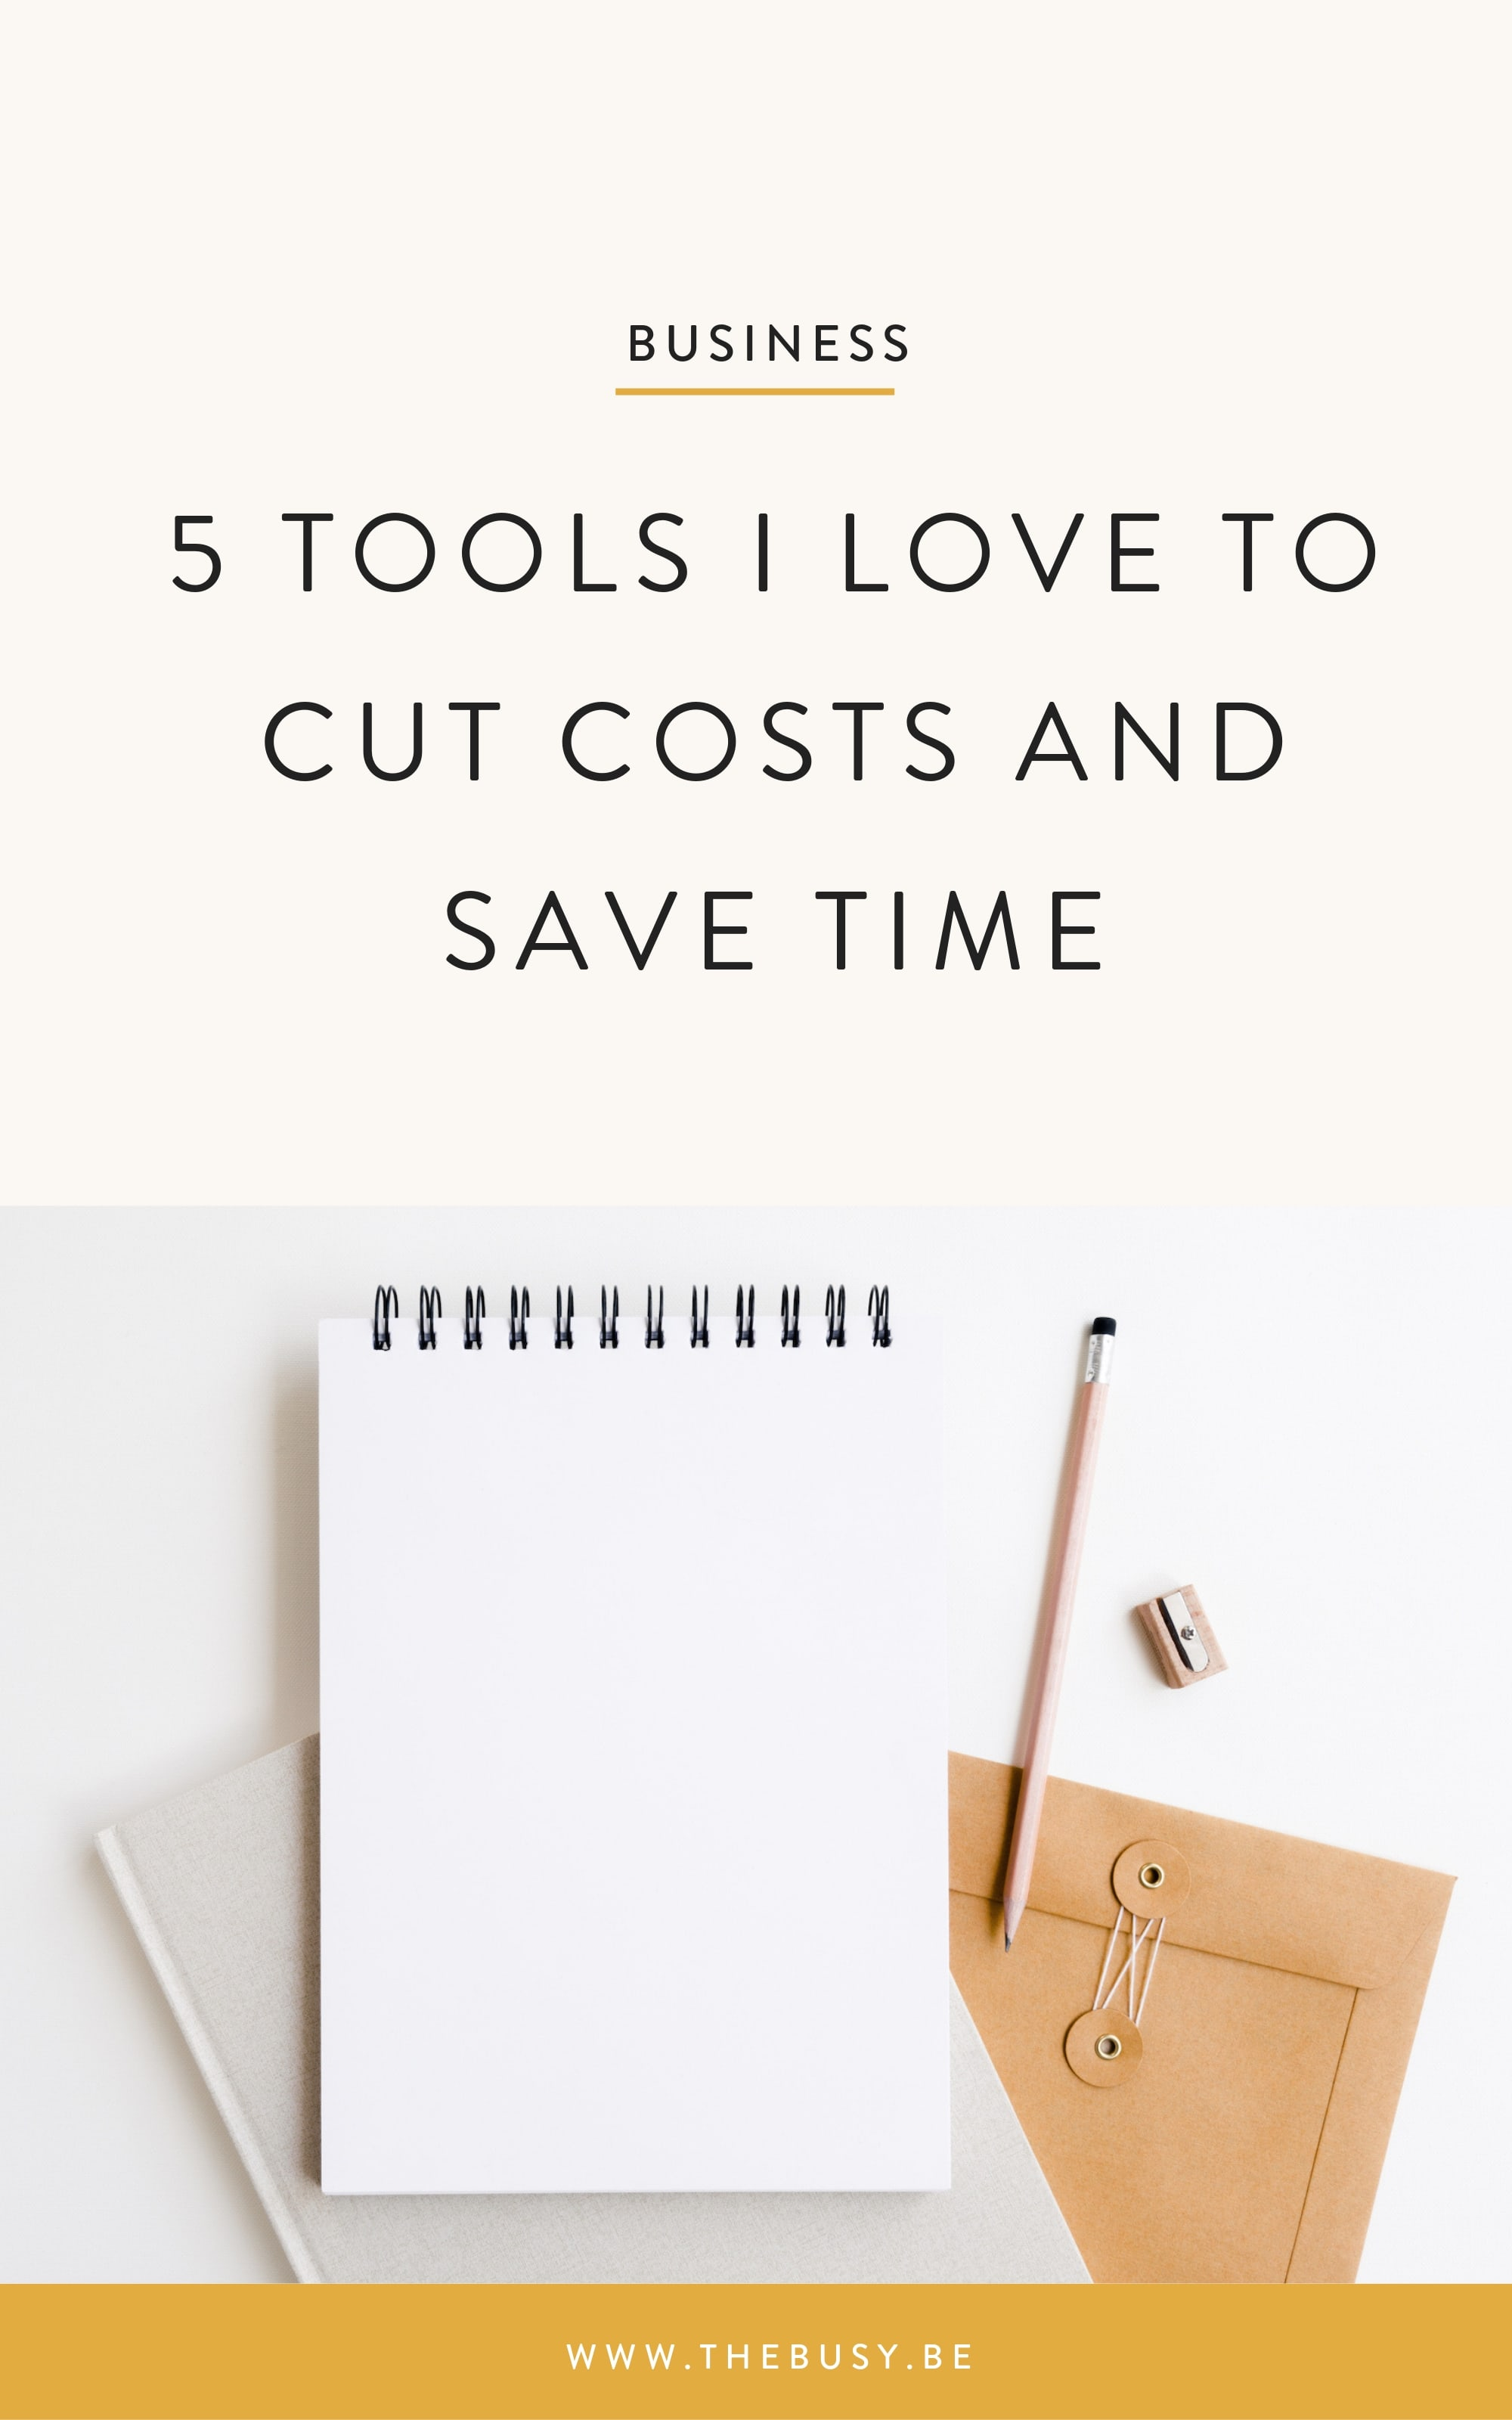 5 Tools I Love to Cut Costs and Save Time - The Busy Bee